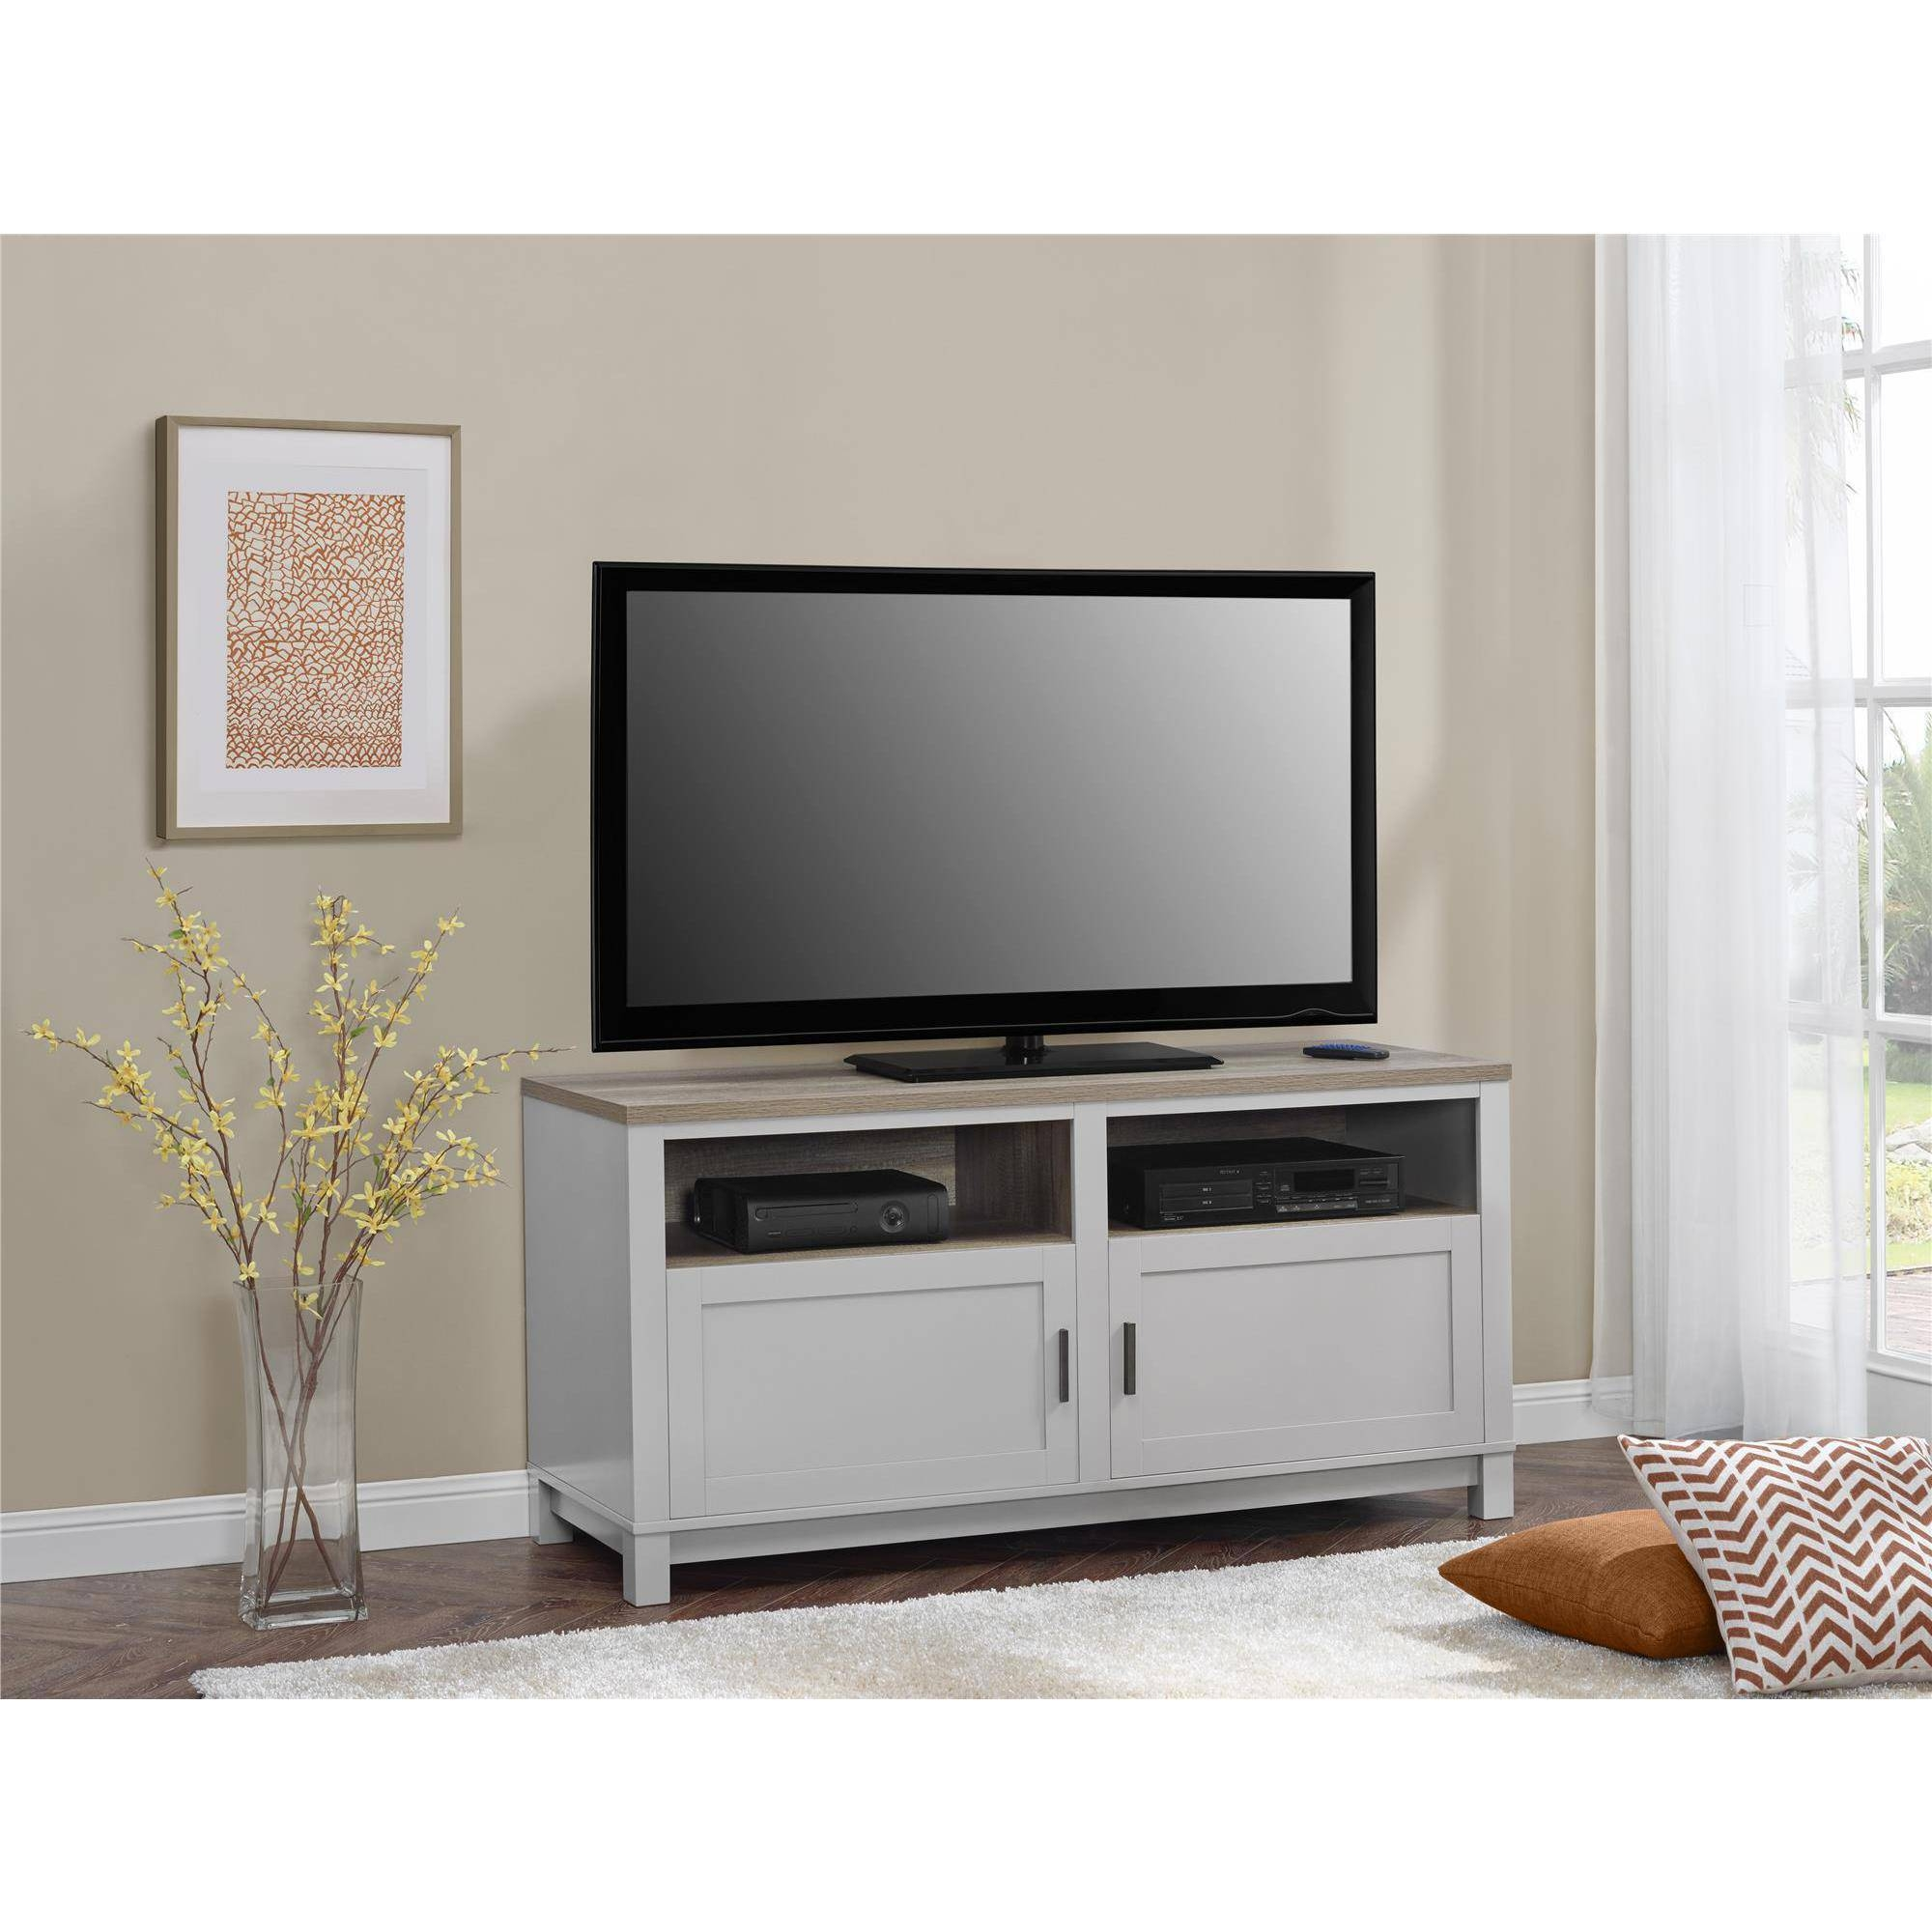 Better Homes And Gardens Langley Bay Tv Stand For Tvs Up To 60 with Grey Tv Stands (Image 3 of 15)